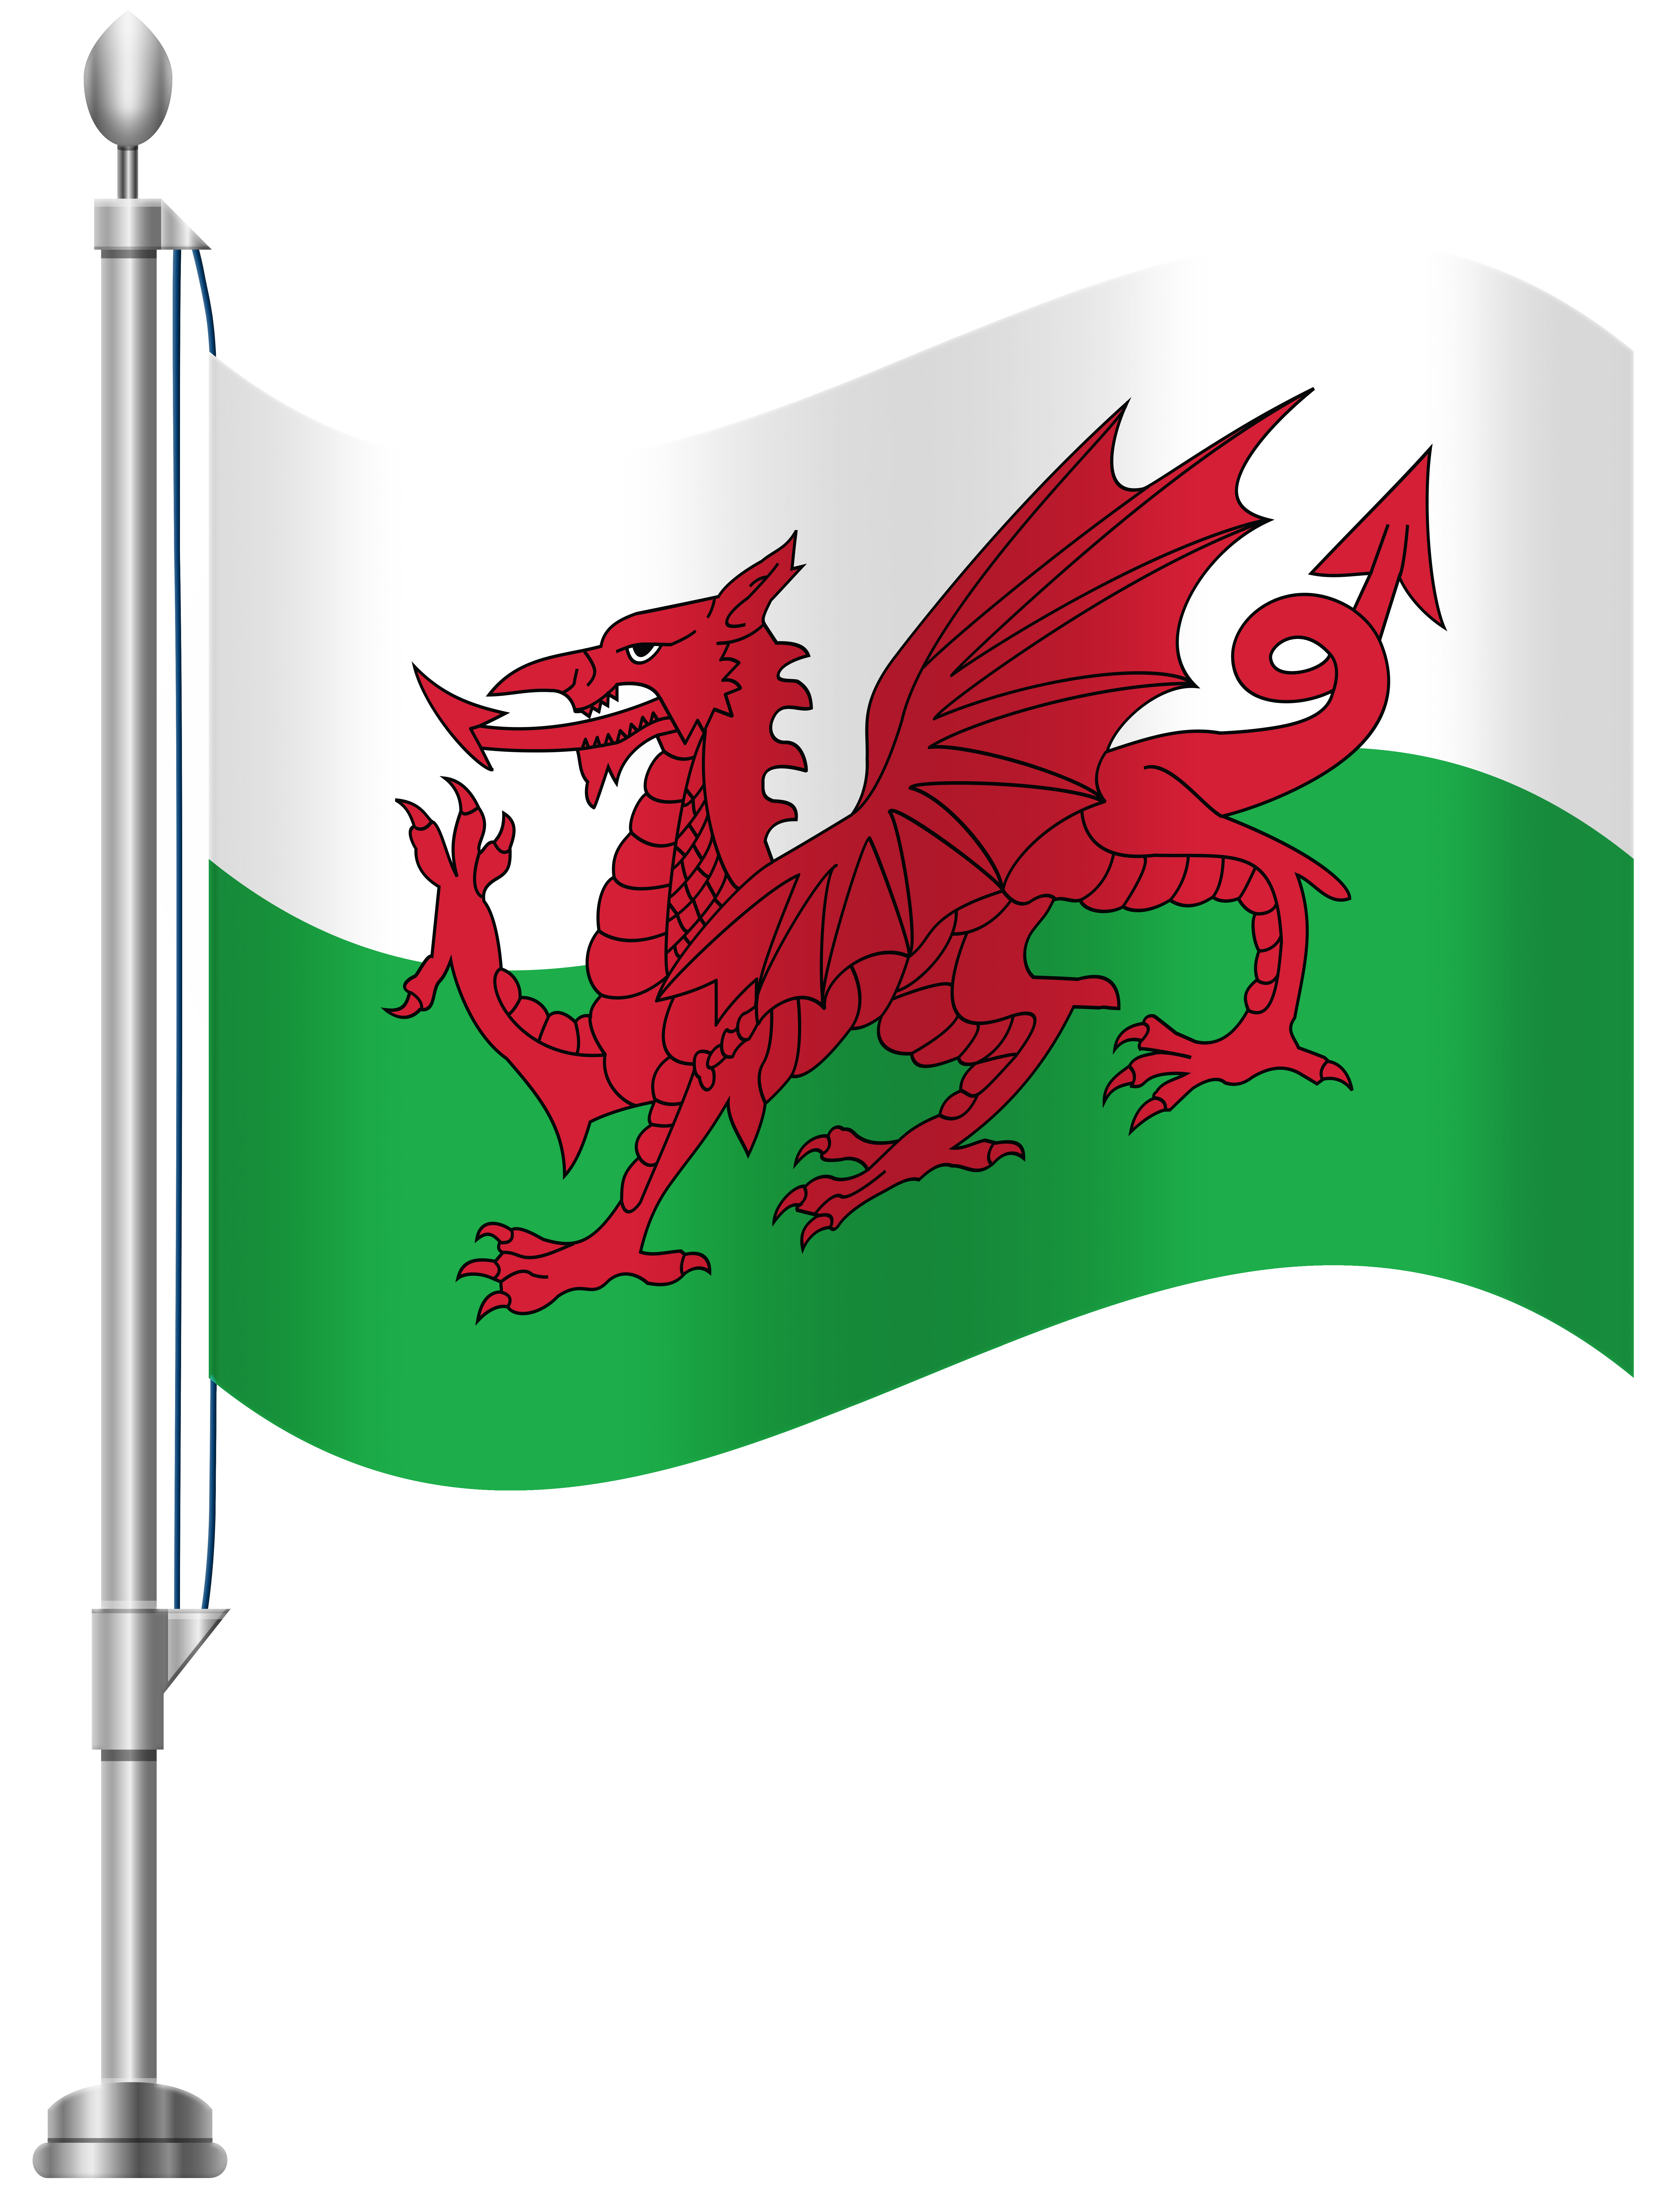 jpg download Flags clipart transparent background. Wales flag png clip.